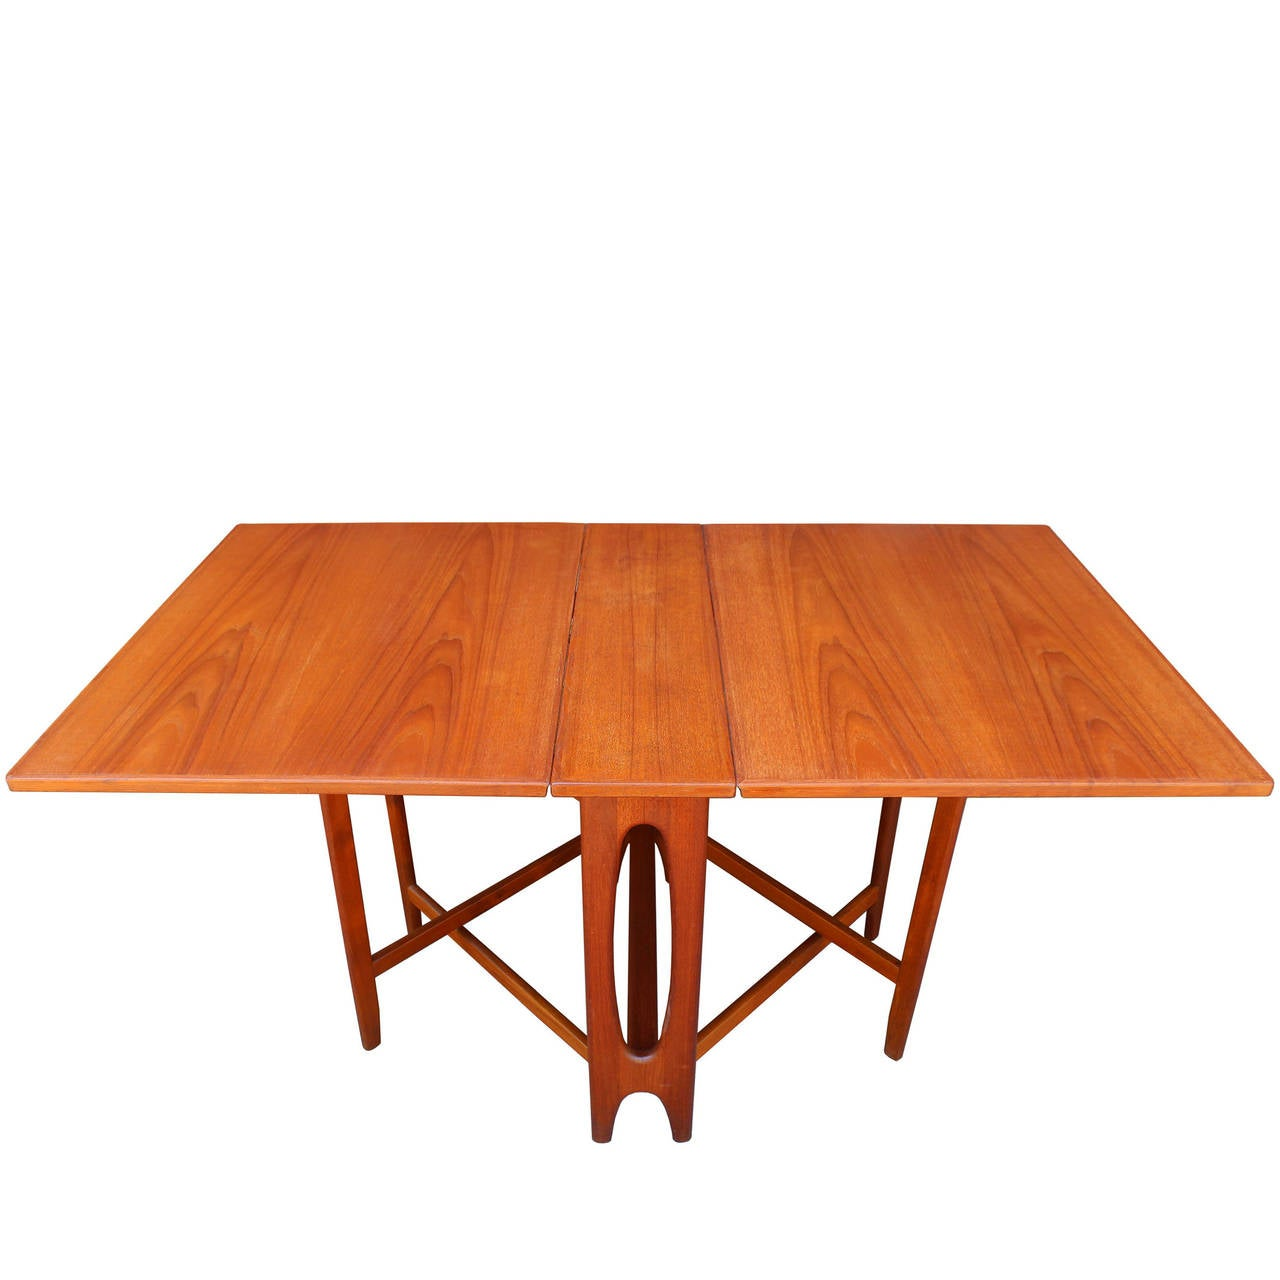 Drop Leaf Table Dining: Norwegian Drop Leaf Dining Table At 1stdibs